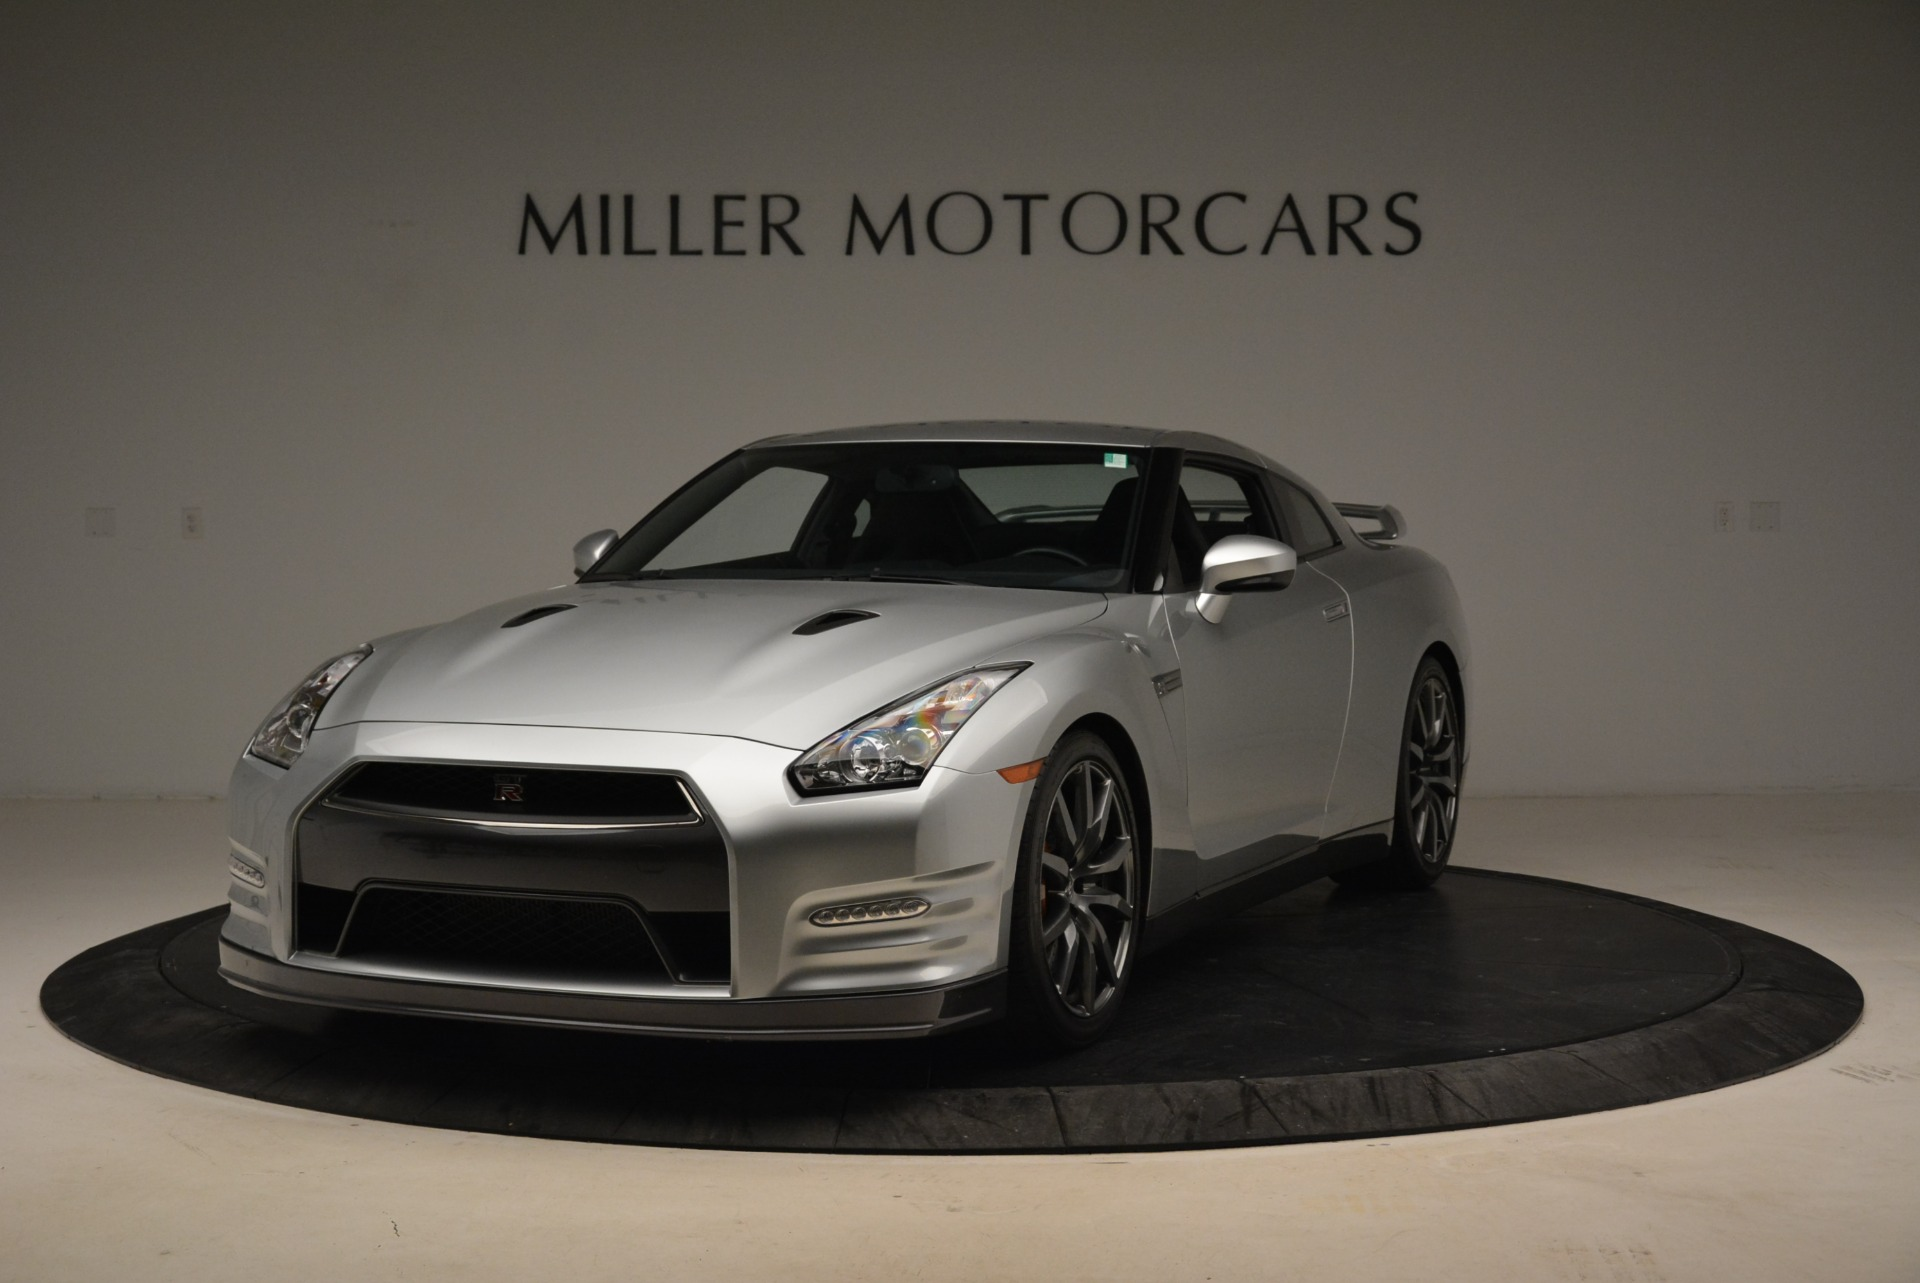 Used 2013 Nissan GT-R Premium for sale Sold at Aston Martin of Greenwich in Greenwich CT 06830 1